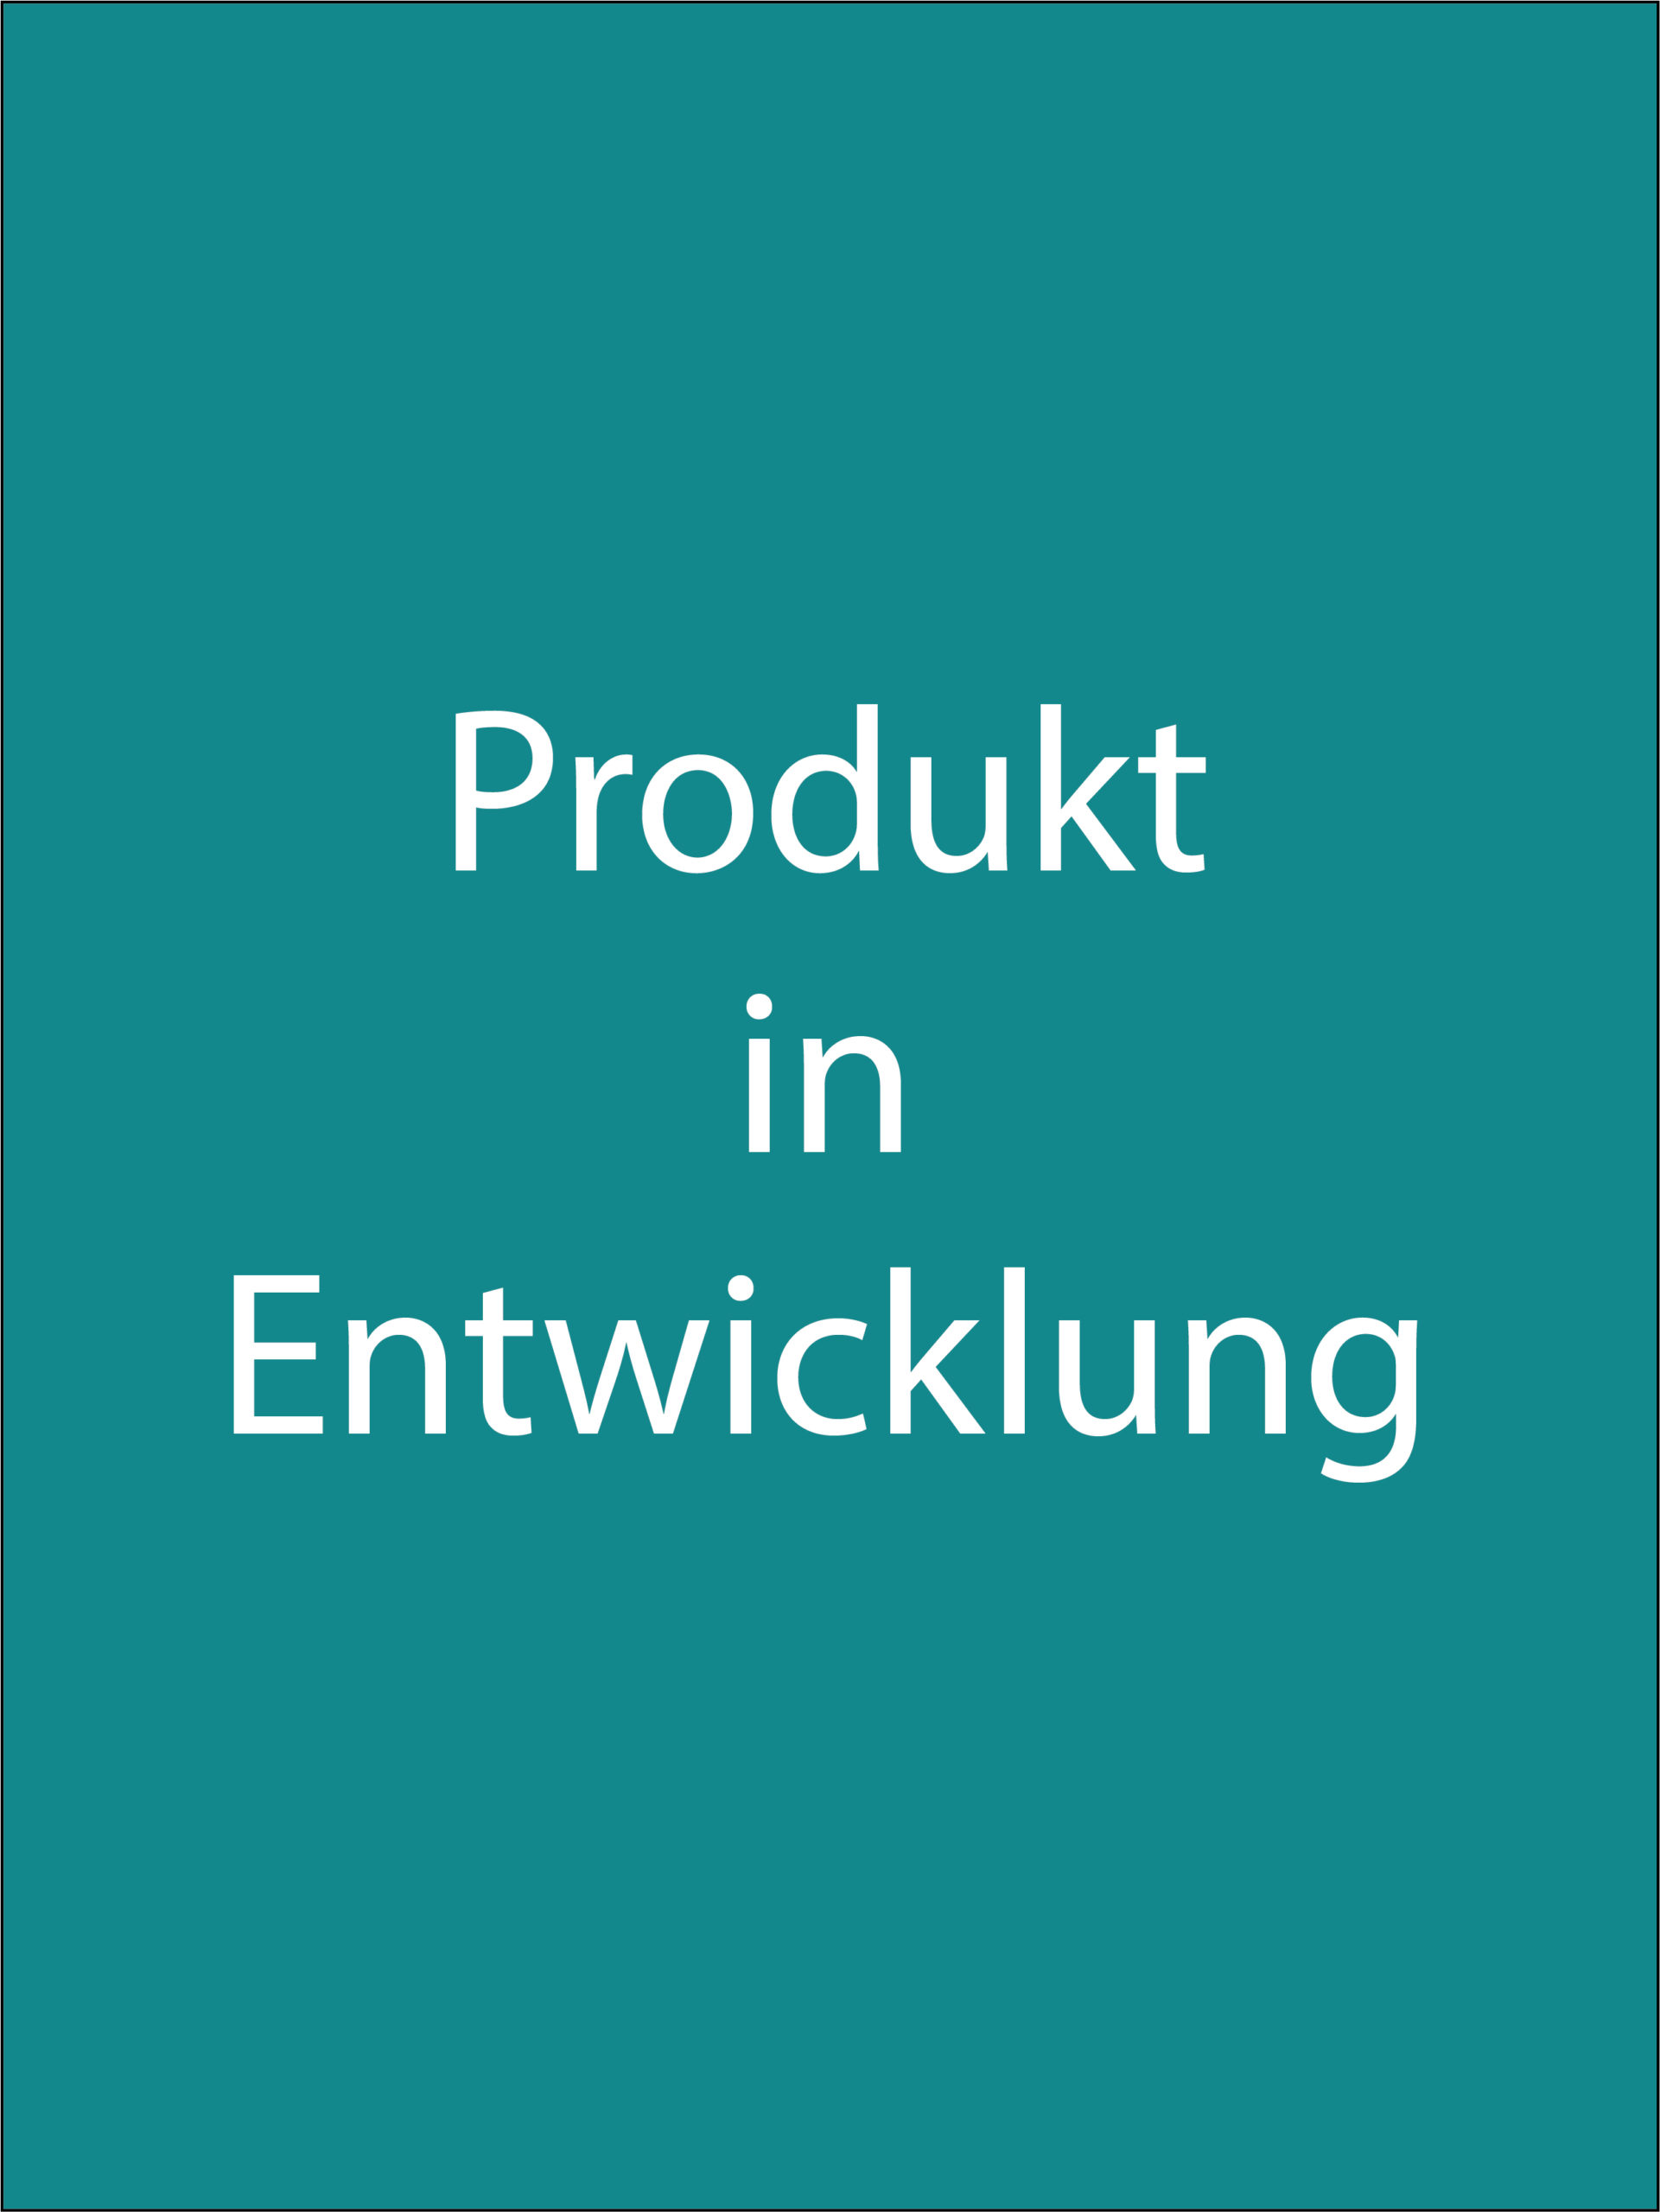 In Entwicklung Image